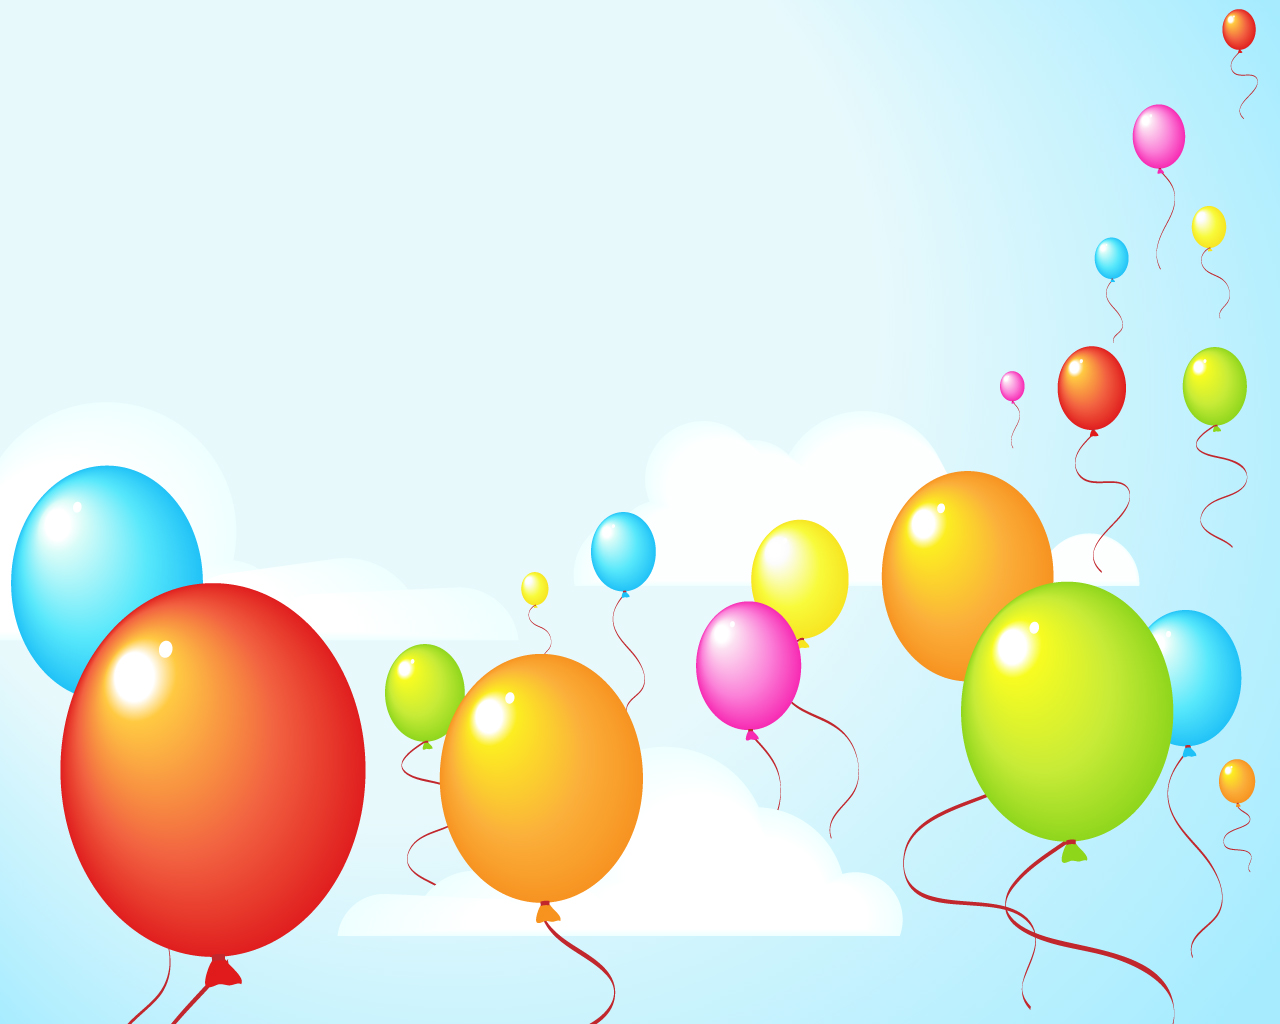 balloons wallpapers - photo #22